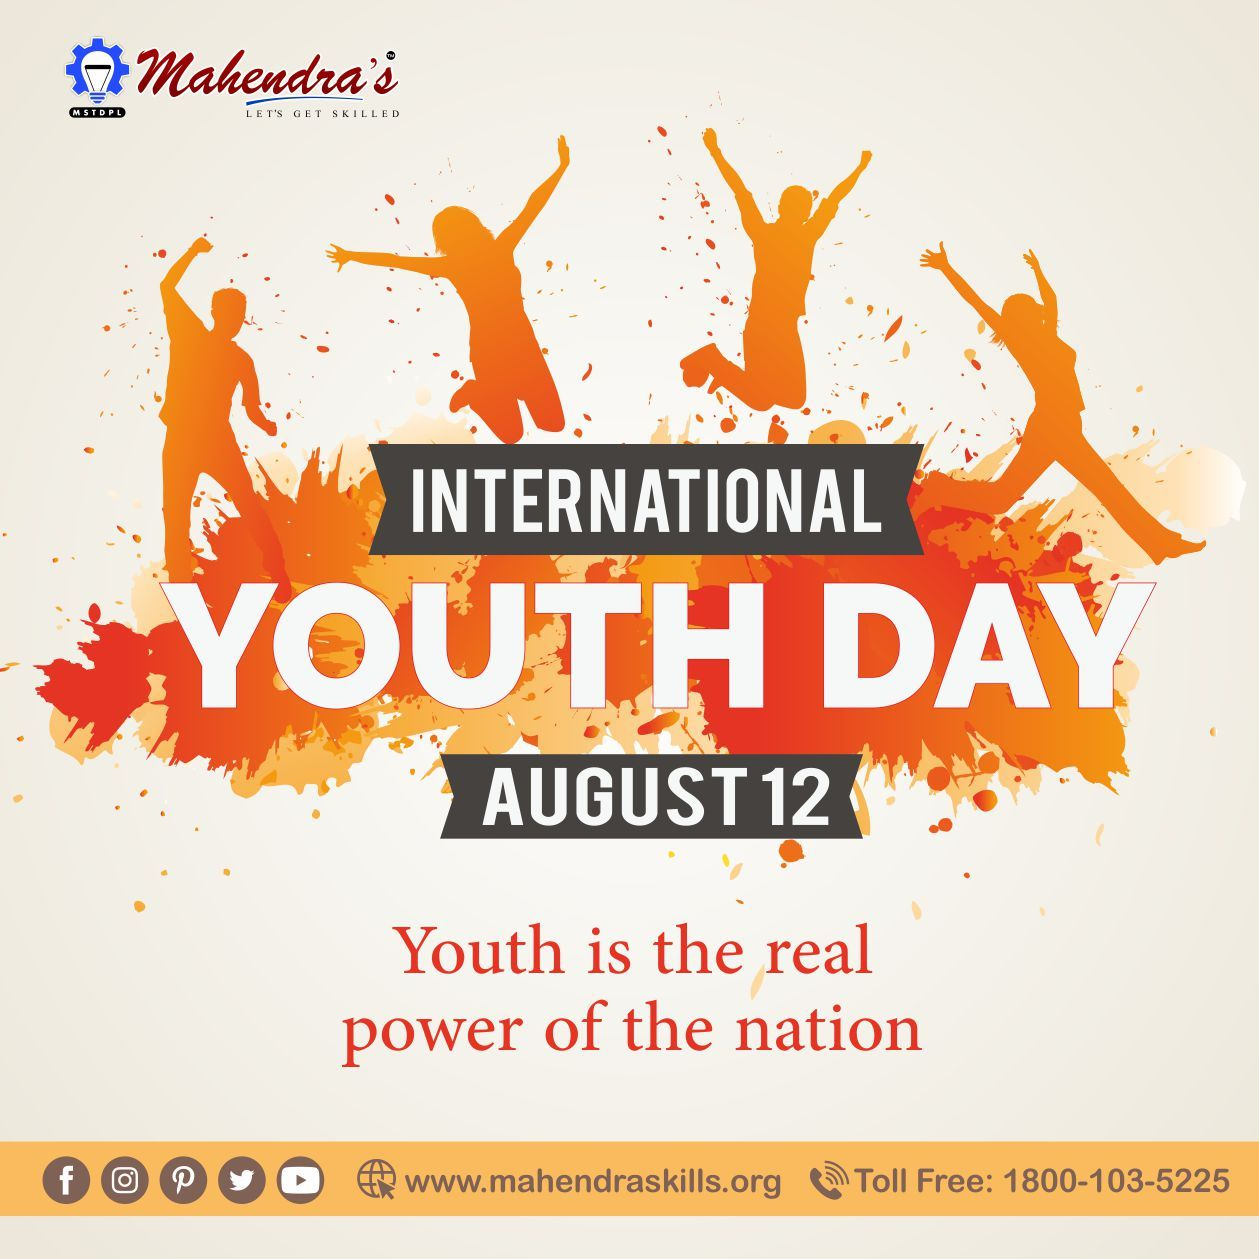 International Youth Day Iyd Is An Awareness Day To Draw